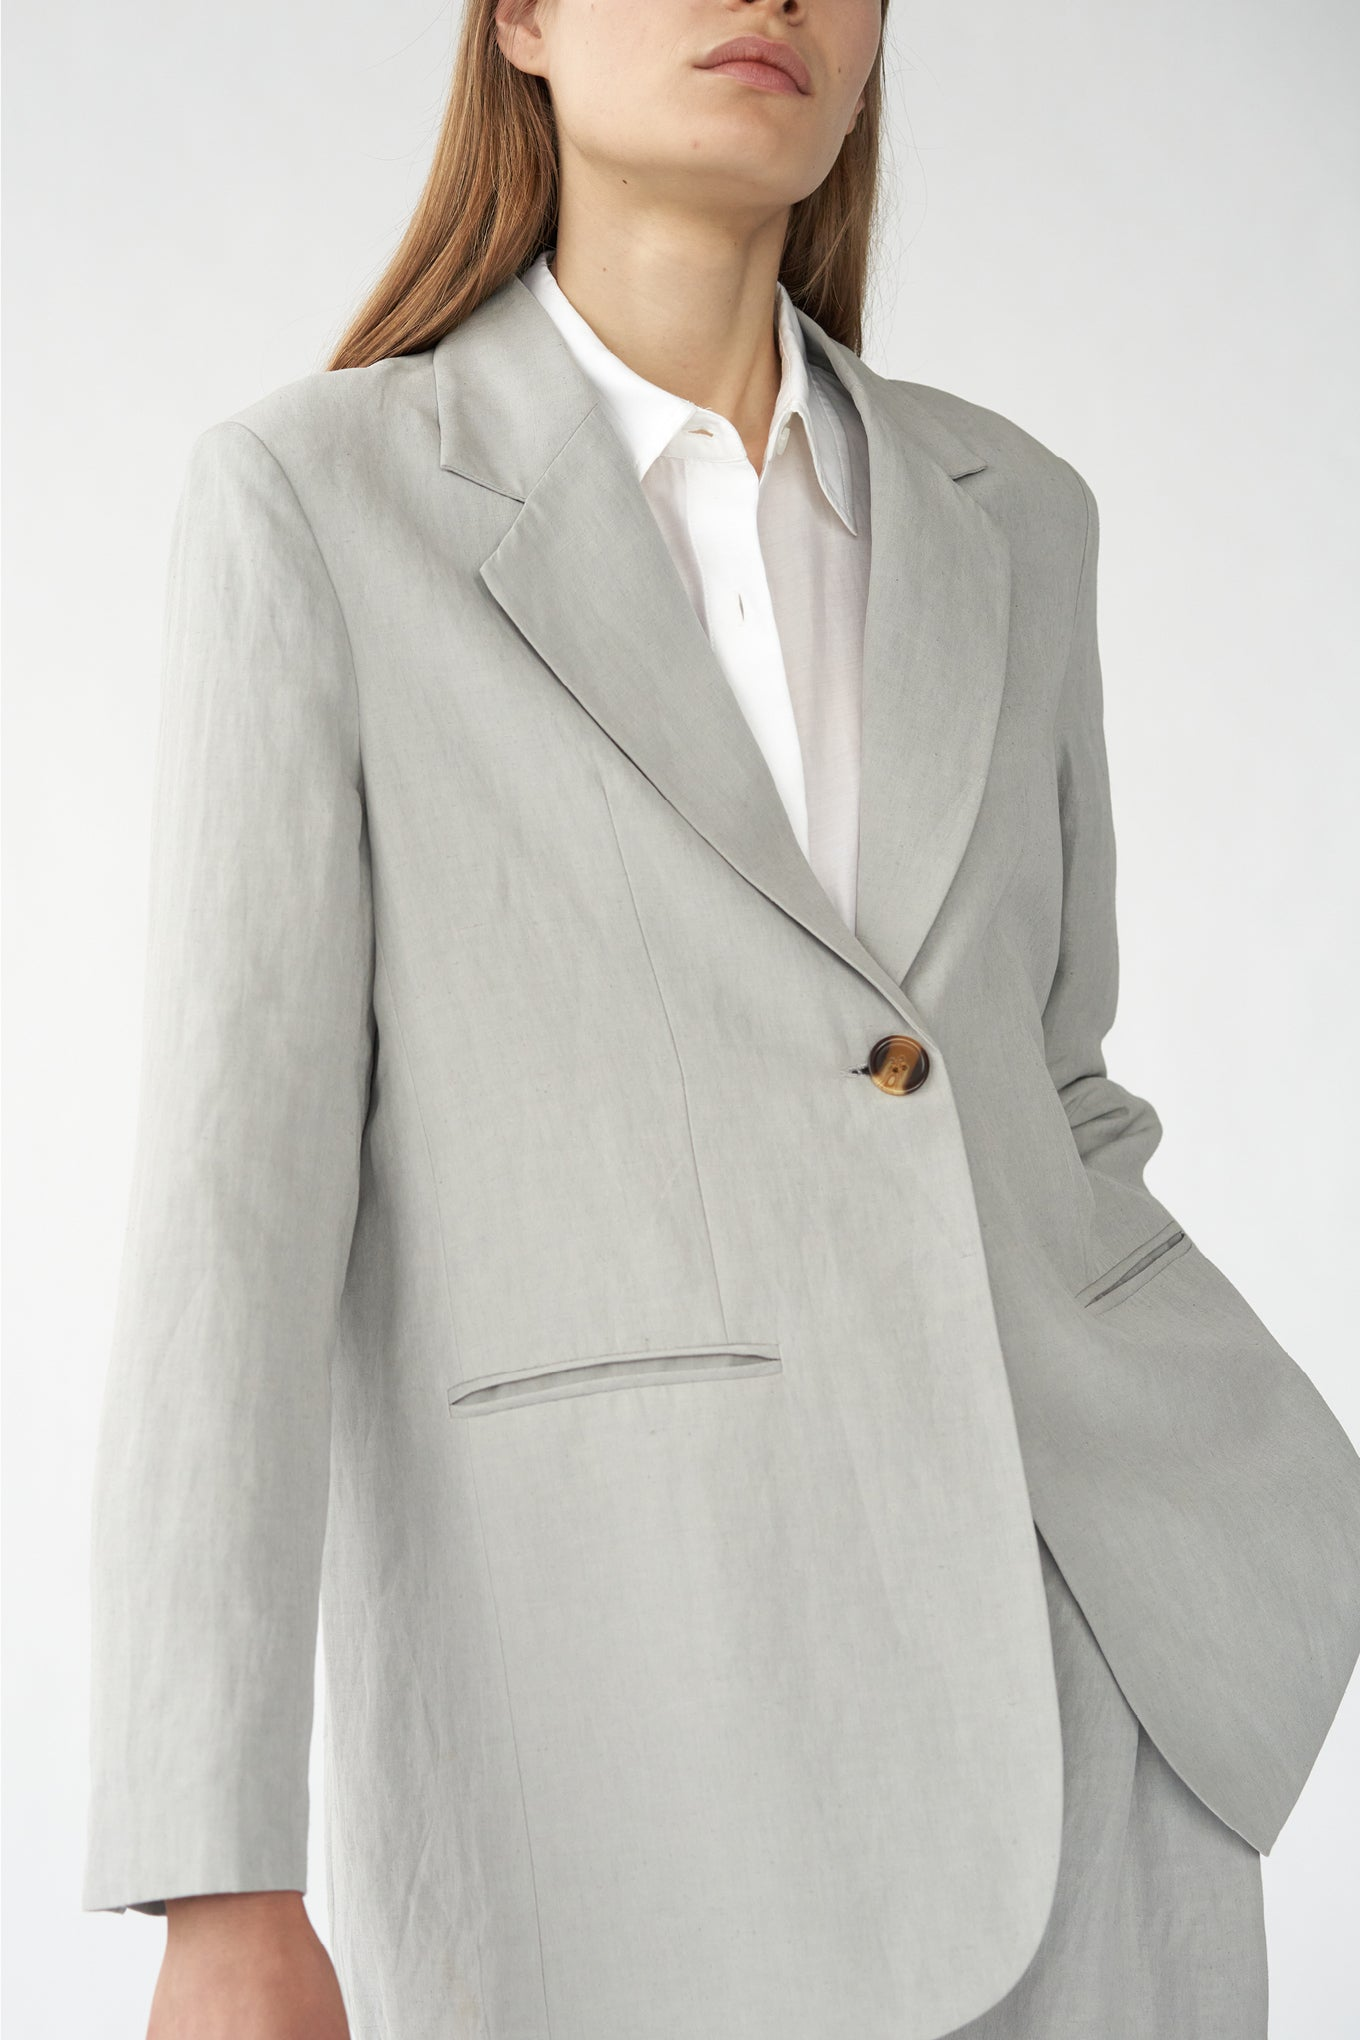 OTIS BLAZER - GREY - SILK/LINEN